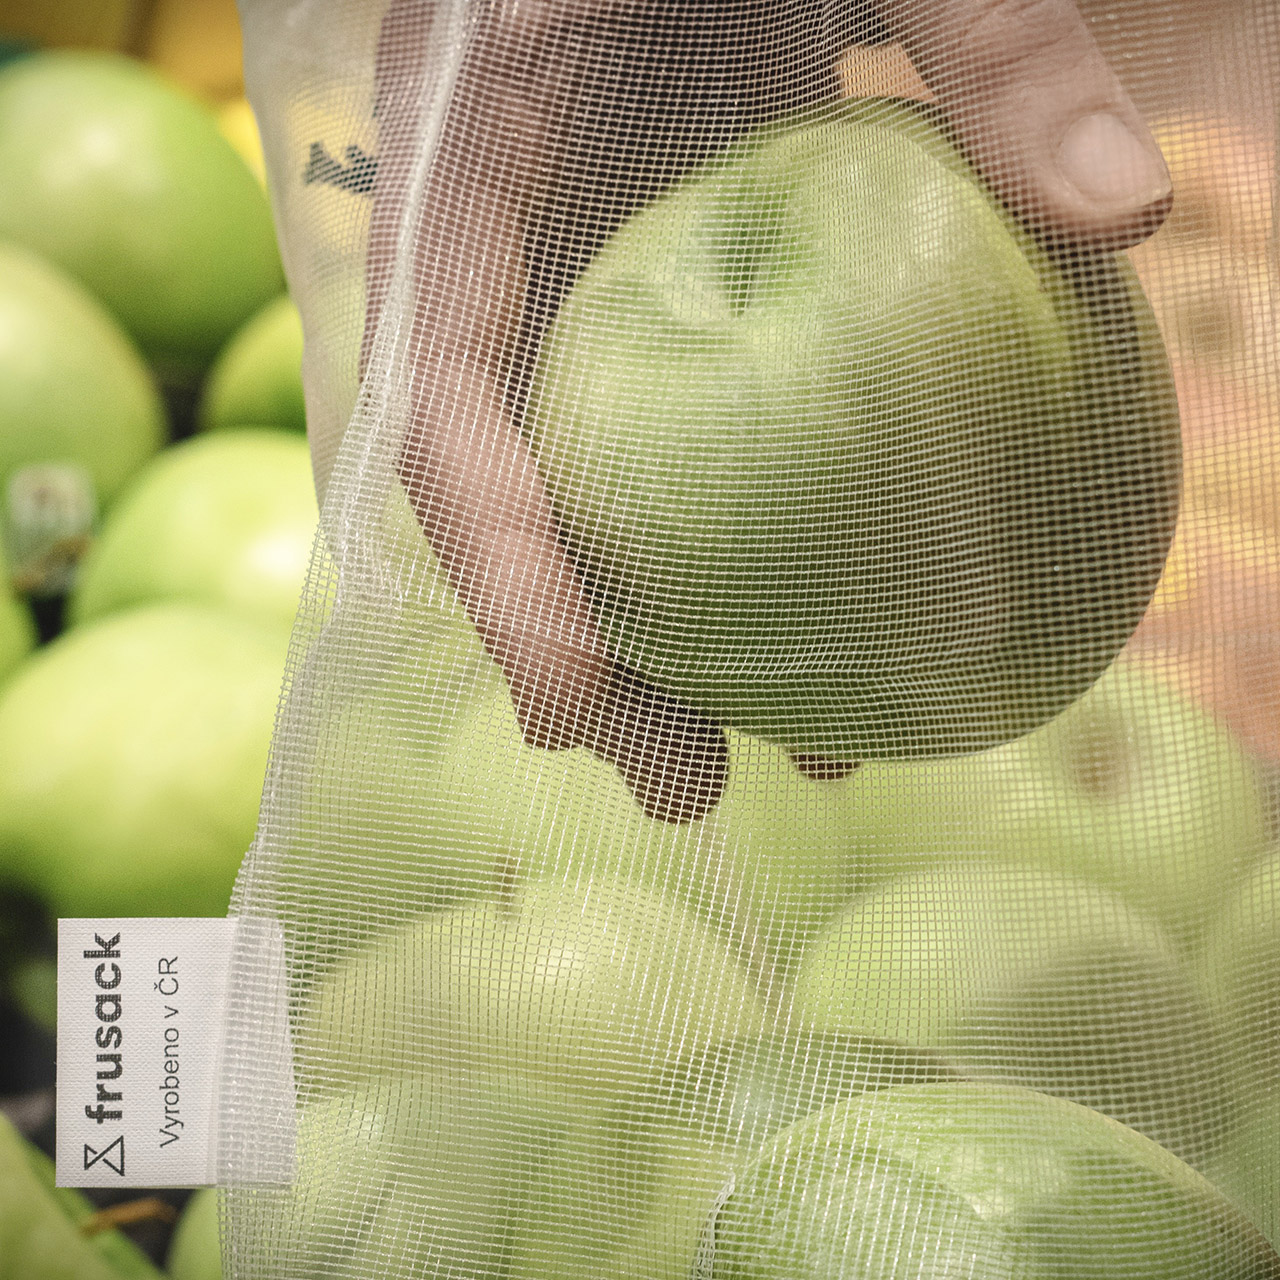 Frusack with apples in supermarket